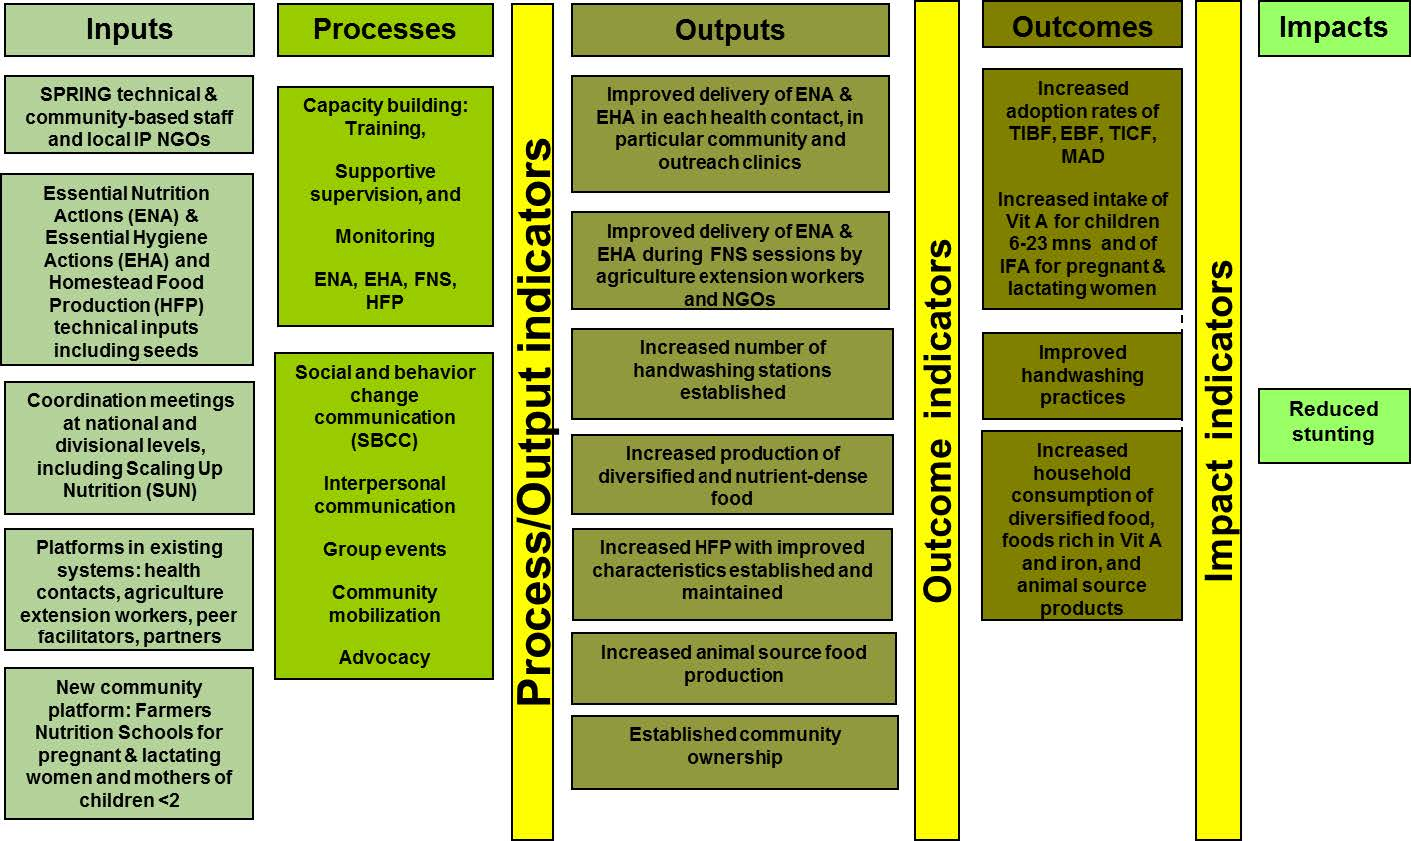 Image of the Conceptual Framework